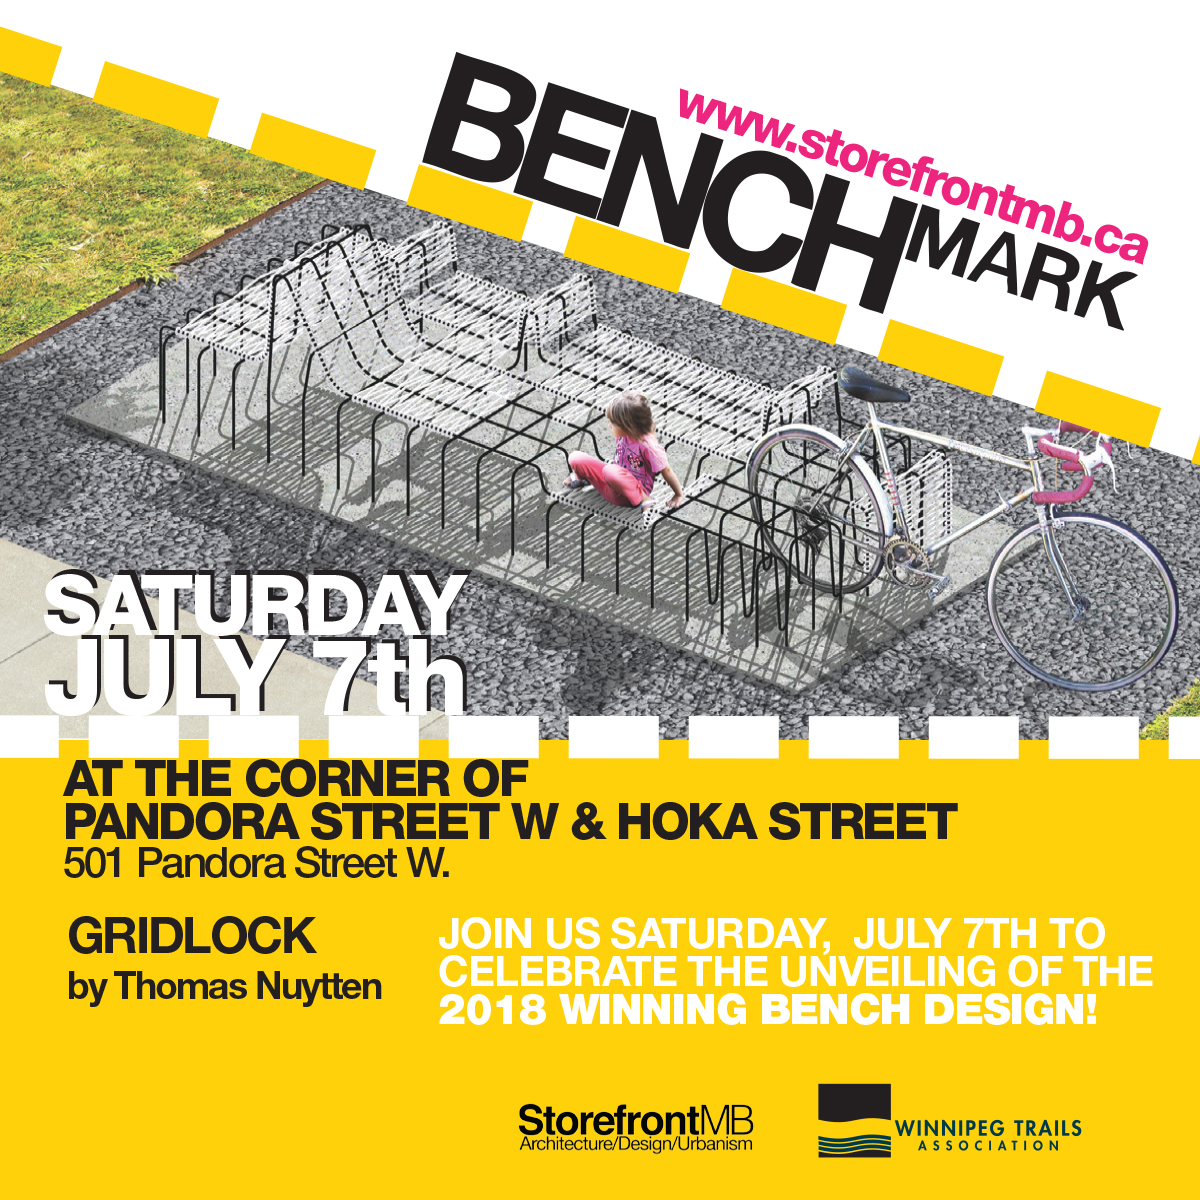 """Presented by Storefront Manitoba and the Winnipeg Trails Association, the """"Benchmark"""" trails-based placemaking and design competition launched in December 2017 and will offer Winnipeggers a place to rest and enjoy our growing trail network. This is the second year of the competition and will result in a permanent bench installation that will challenge the idea of the 'common' bench and become a local landmark. This year's winning entry is titled GRIDLOCK, a concept that references the 'weaving' relationship between the bicycle and the car. """"Tension between car and bicycle arise as each commuter tries to coexist throughout the streets of Winnipeg. The driver, stuck in the traffic logged, orthogonal grid of streets and avenues watches while the cyclist is free to weave through and beyond to the ever-growing network of bike lanes and trails. Gridlock is a representation of how these conflicting entities, which battle for the same space, can overlap and intertwine to create a harmonious existence."""" - Thomas Nuytten, Designer of GRIDLOCK 2018 WINNING BENCHMARK DESIGN HIGHLIGHTS GROWING TRAIL NETWORK """"Gridlock"""" Design Works to Improve Relationship Between Bikes and Cars """"Transcona is excited to be the host community for the BENCHmark project this year. Being selected for this unique initiative acknowledges the hard work of the community over the past years, in developing a robust trail network; and recognizes the positive impact the BIZ's recent public art initiatives have made towards transforming the BIZ Zone into an open air public art gallery. The addition of the benches along our Pandora Pathway will further activate community, add more value to our trails, and become a beacon for our member businesses."""" - Alex Morrison, Executive Director, Transcona BIZ Placemaking is an important aspect of transportation, recreation and city building. A design competition to spur creative placemaking ideas is an opportunity to permanently and continually raise awareness of the beau"""